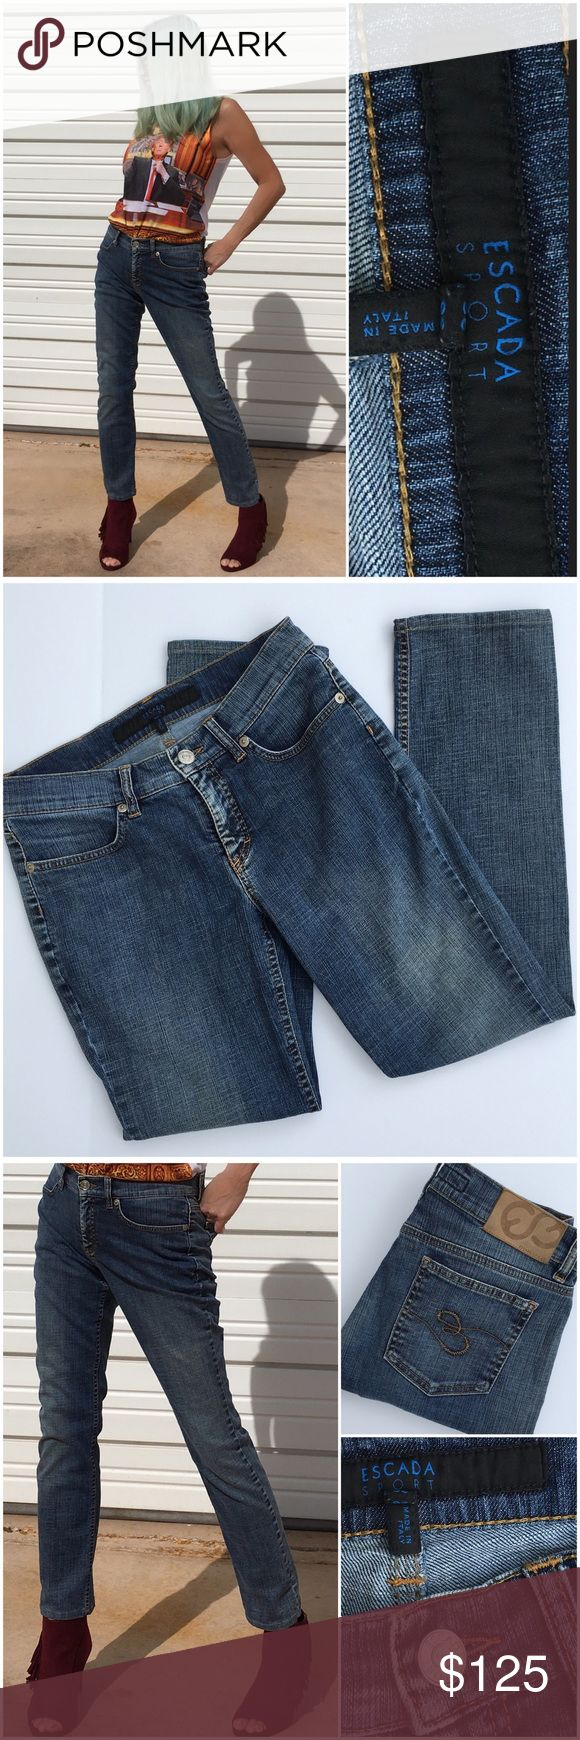 Escada Sport Love these jeans, best combination of style, comfort and fit. Made in Italy. European sizing, size 36, straight leg, riveted pockets, cotton/elastane blend. (#10 Escada Sport Jeans Straight Leg